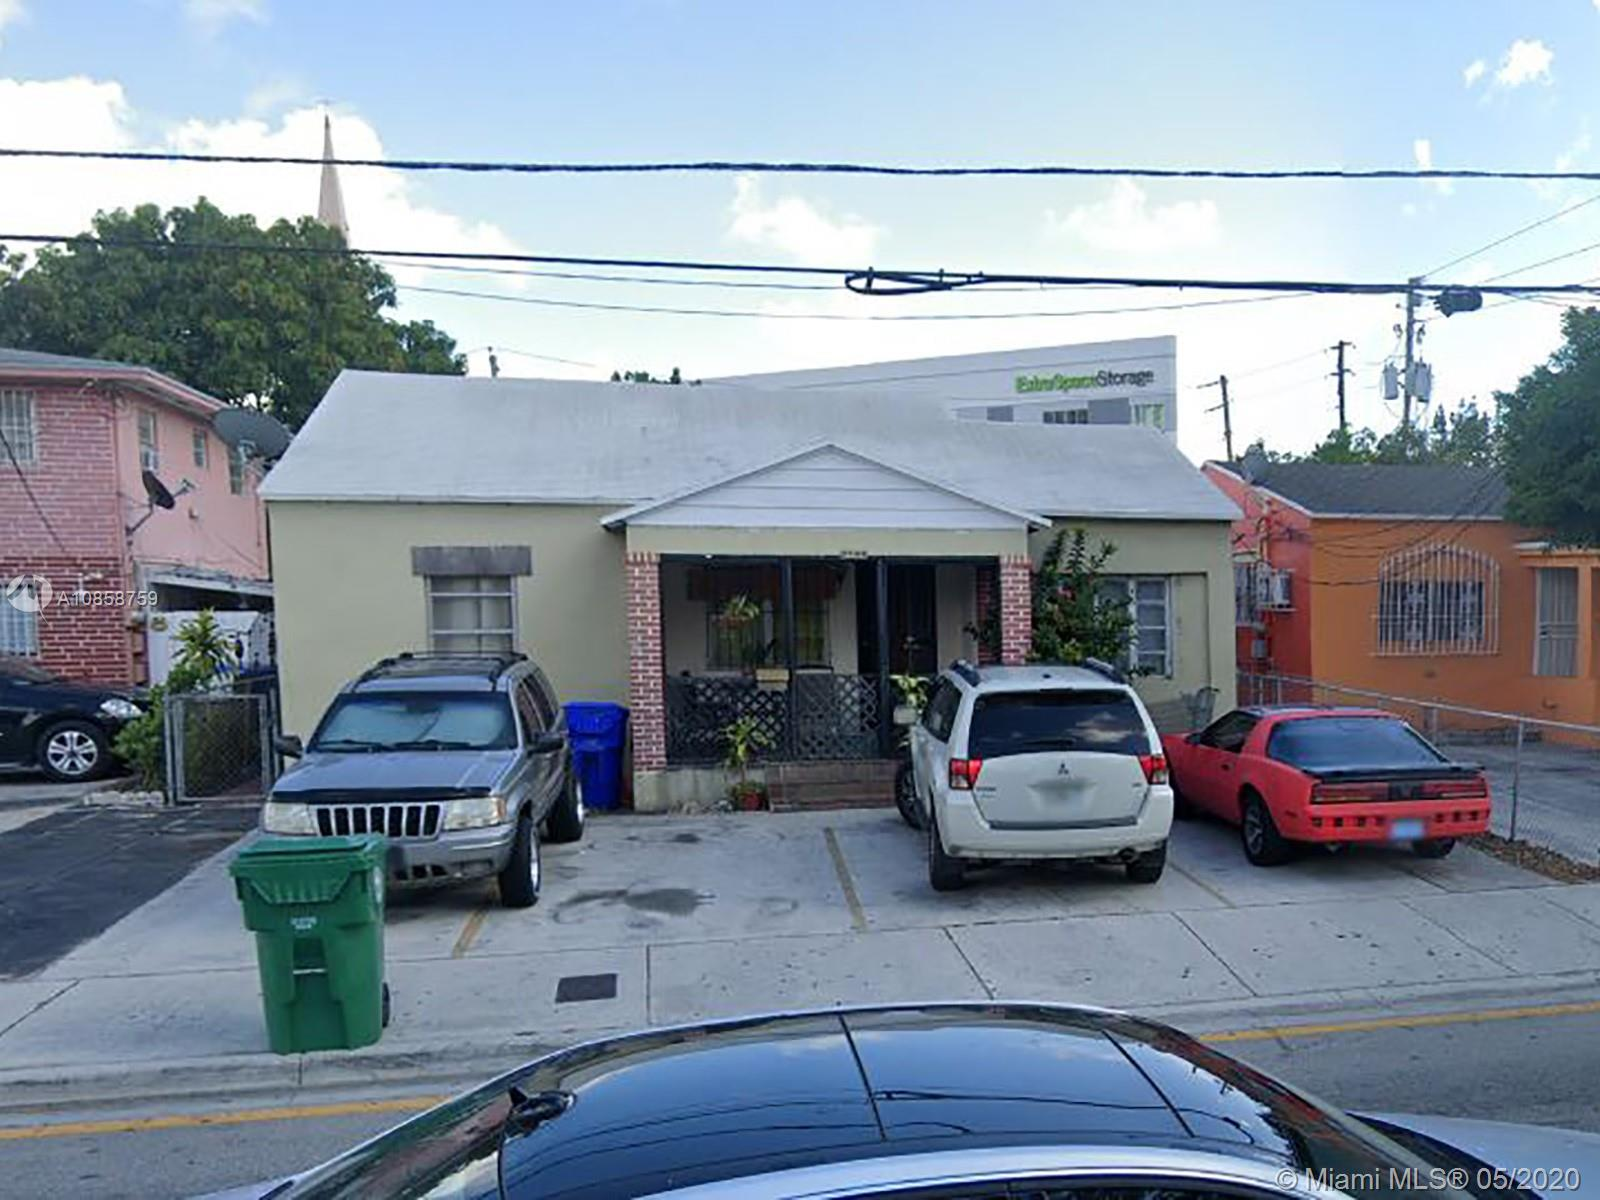 2146 SW 7th St, Miami, Florida 33135, 3 Bedrooms Bedrooms, ,2 BathroomsBathrooms,Residential,For Sale,2146 SW 7th St,A10858759